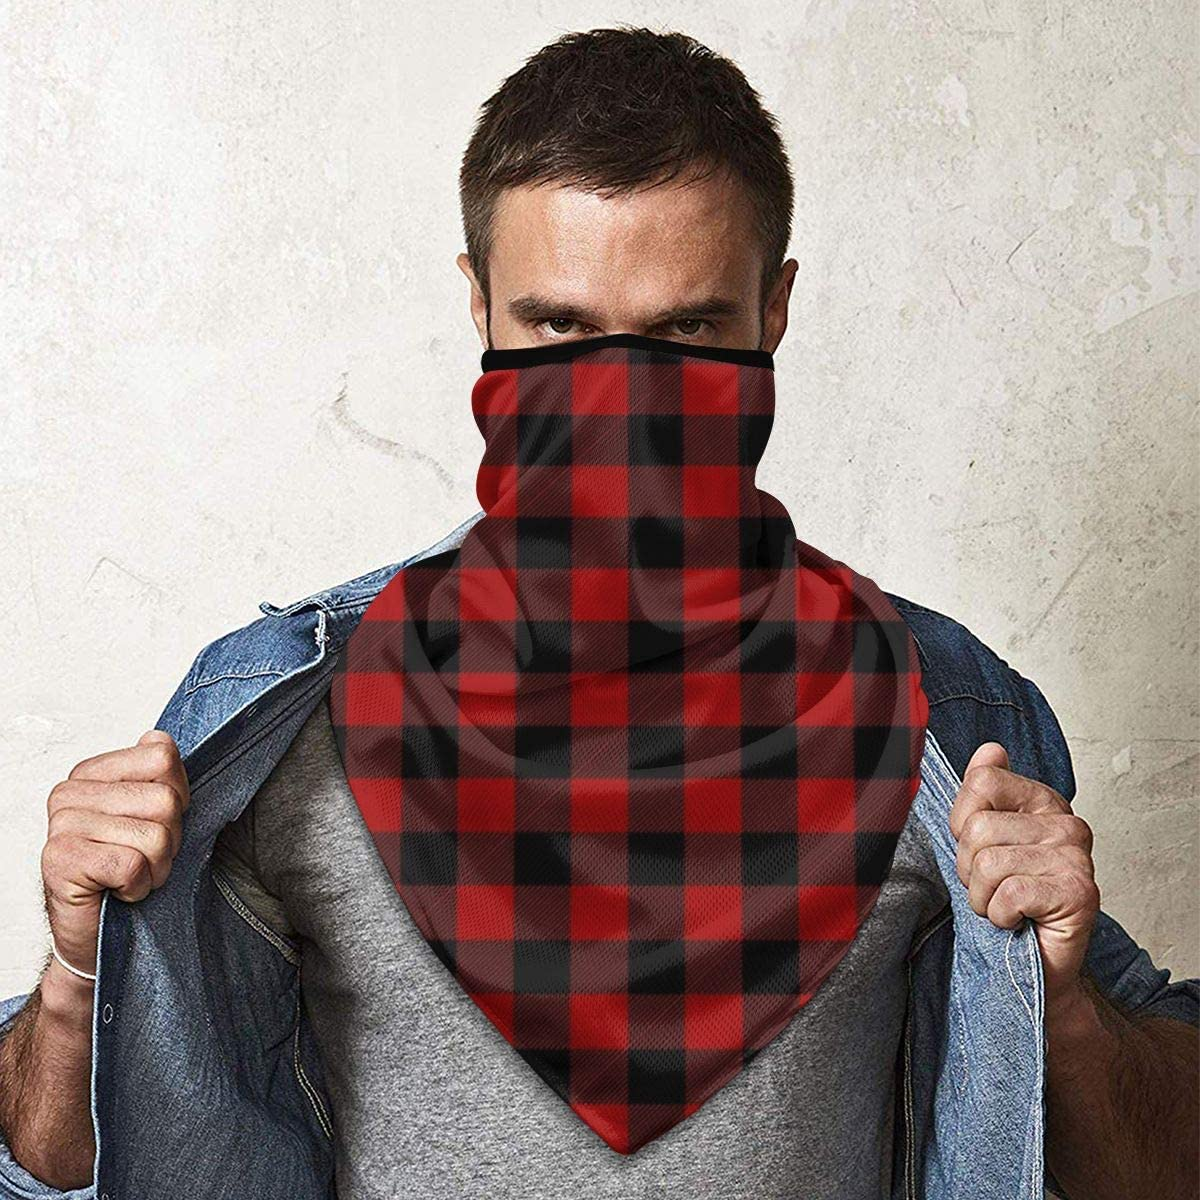 Wind-Resistant Face Mask/& Neck Gaiter,Balaclava Ski Masks,Breathable Tactical Hood,Windproof Face Warmer for Running,Motorcycling,Hiking-Red and Black Plaid